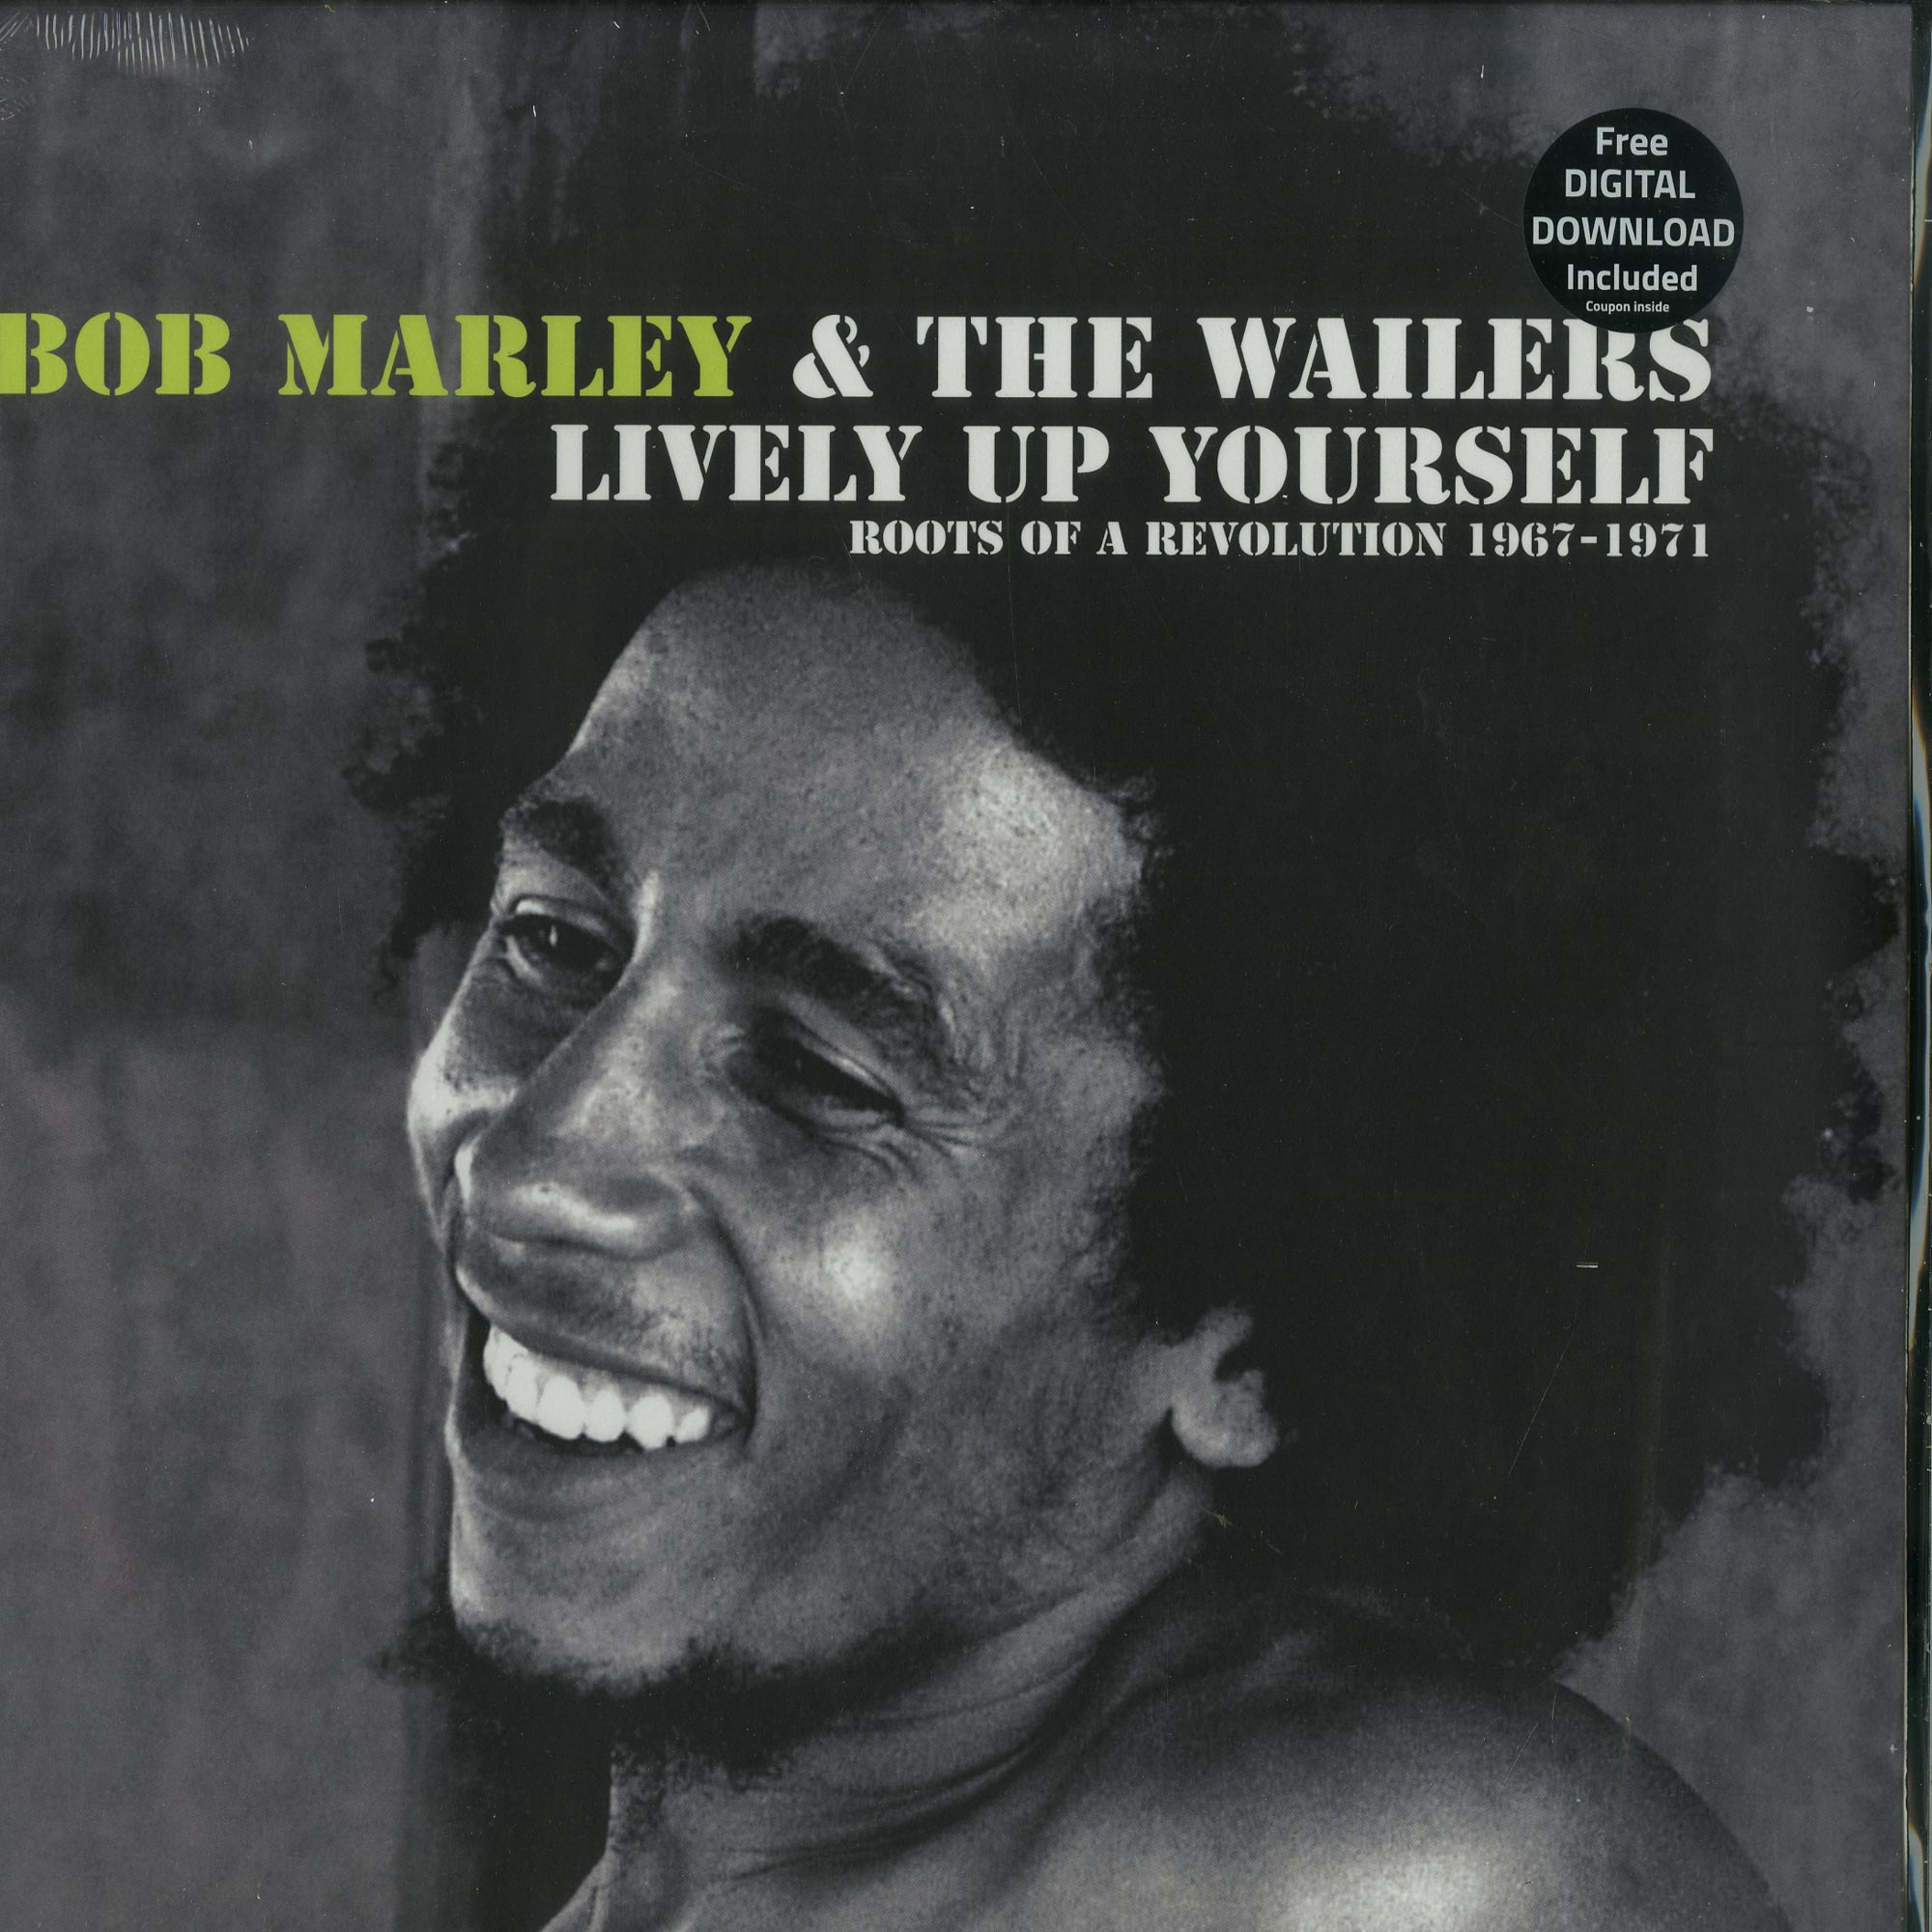 Bob Marley & The Wailers - LIVELY UP YOURSELF - ROOTS OF A REVOLUTION 1967-1971